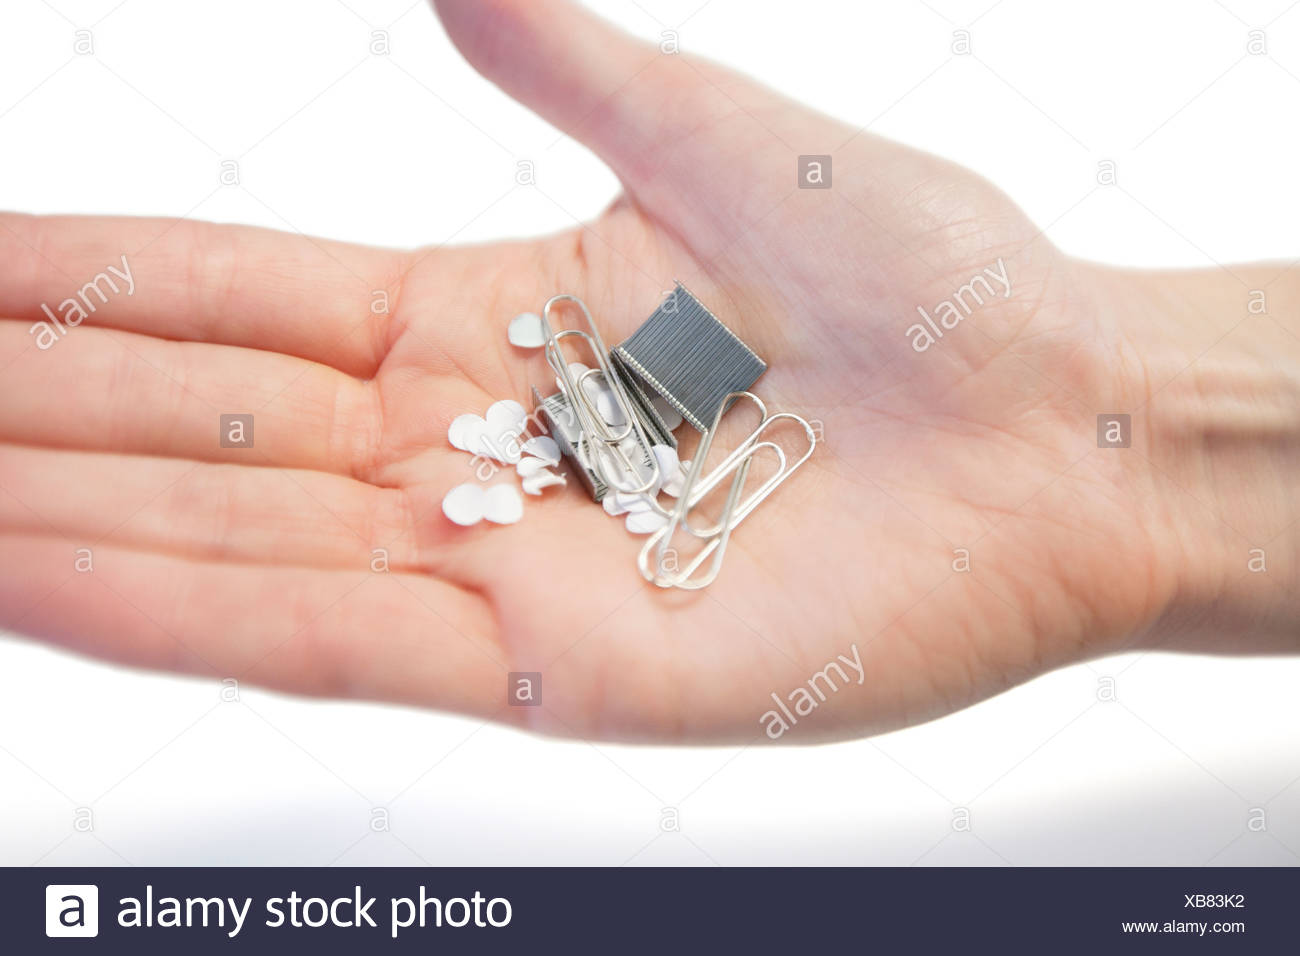 close-up of hand holding paper clips - Stock Image